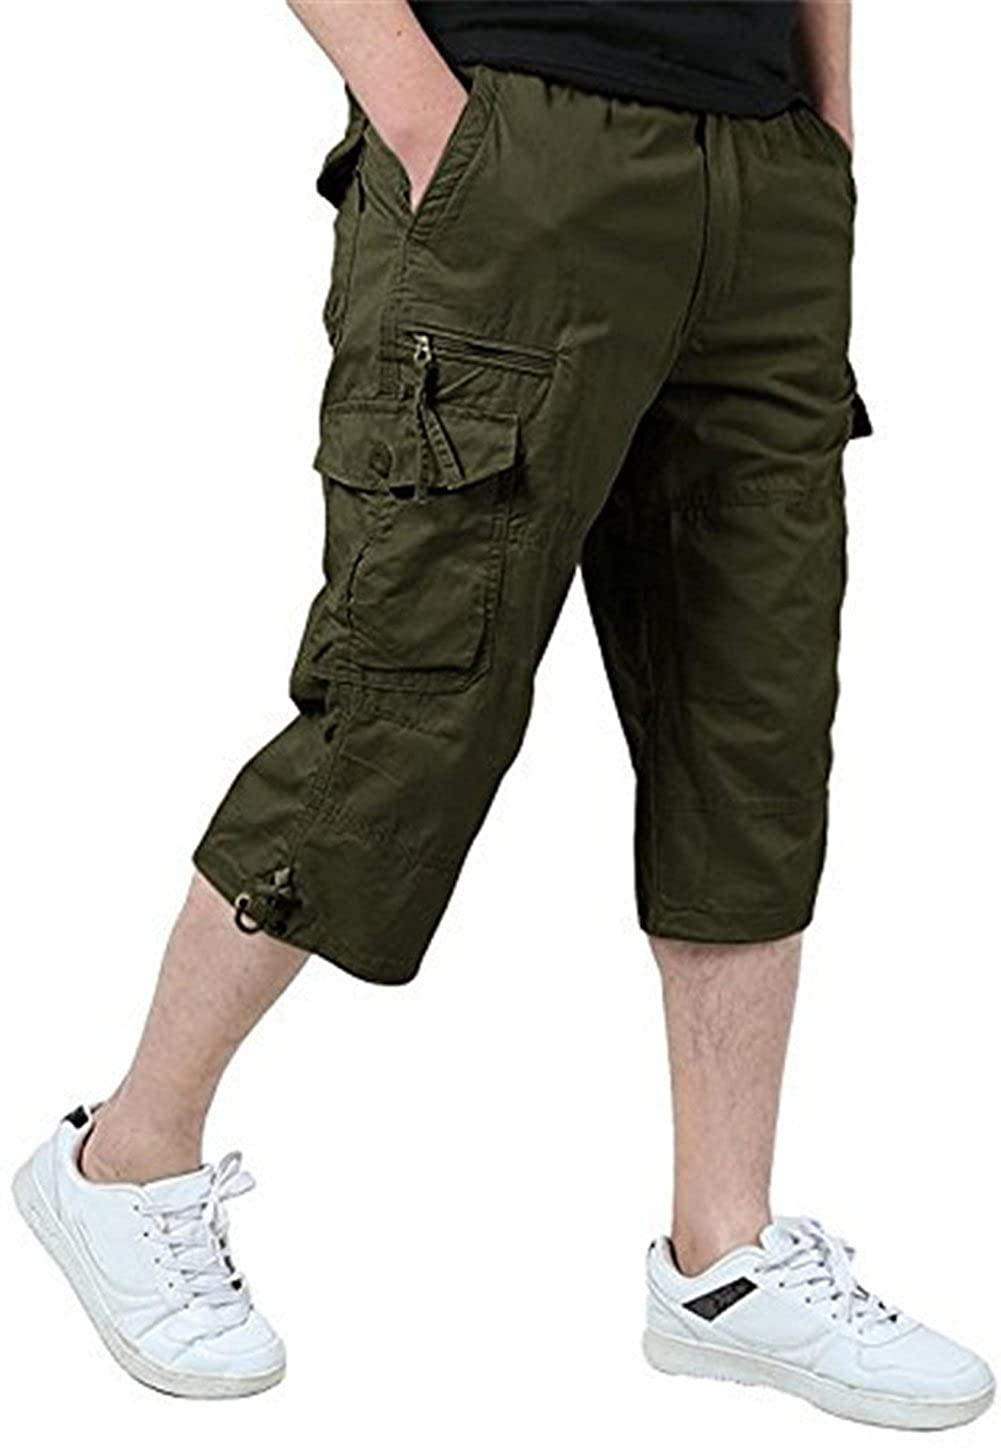 fadbad2cec Mens elastic waist capri style long military style cargo shorts is  comfortable and soft, fashion and breathable. Adjustable waist,multiple  pockets, ...